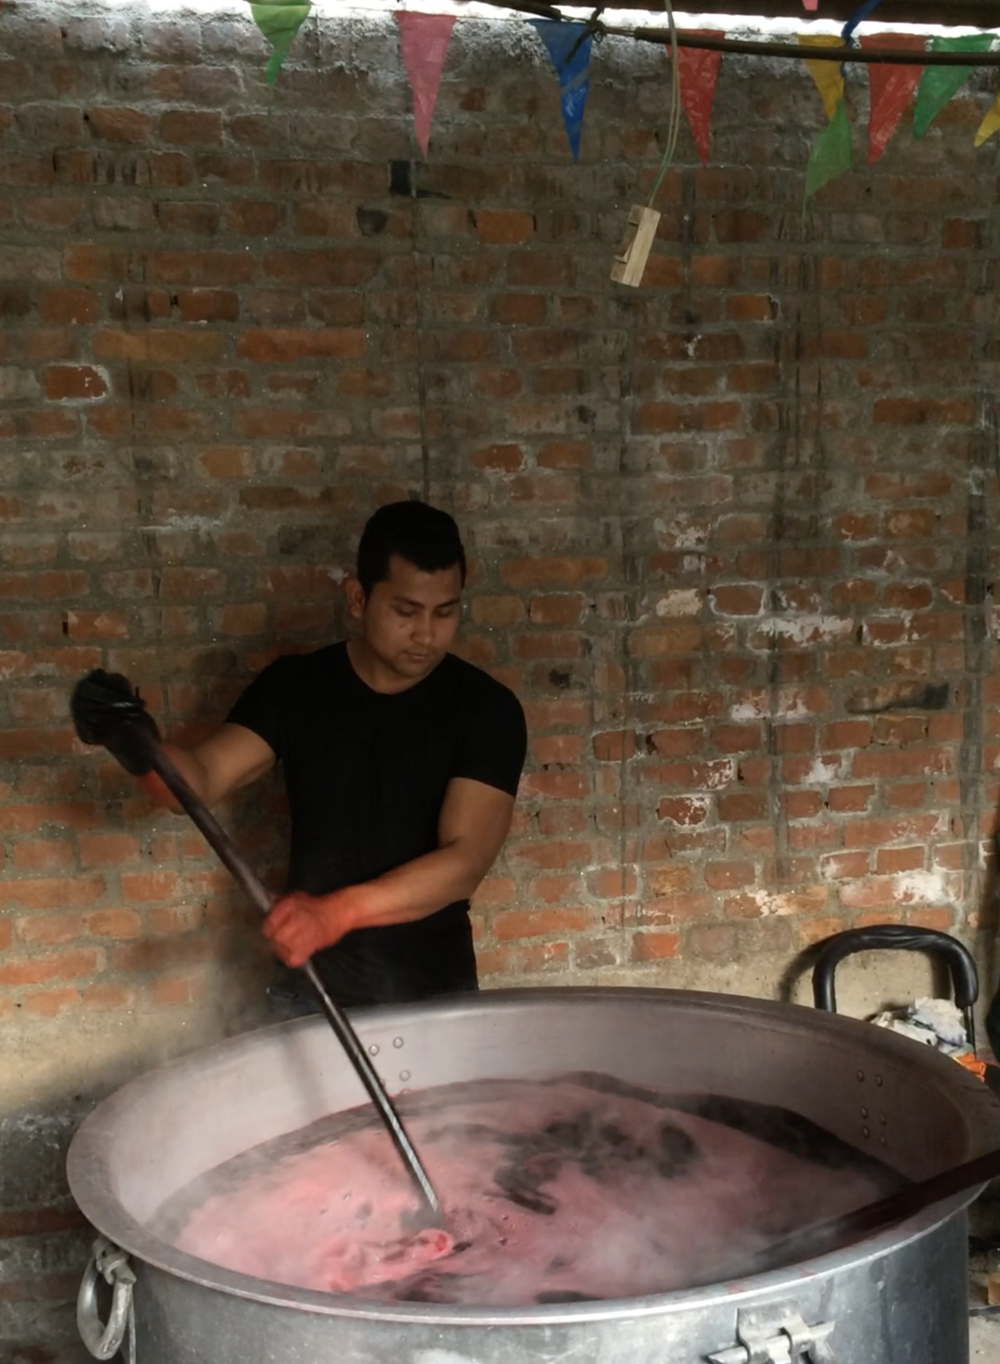 Stirring the yarn in a steaming dye bath